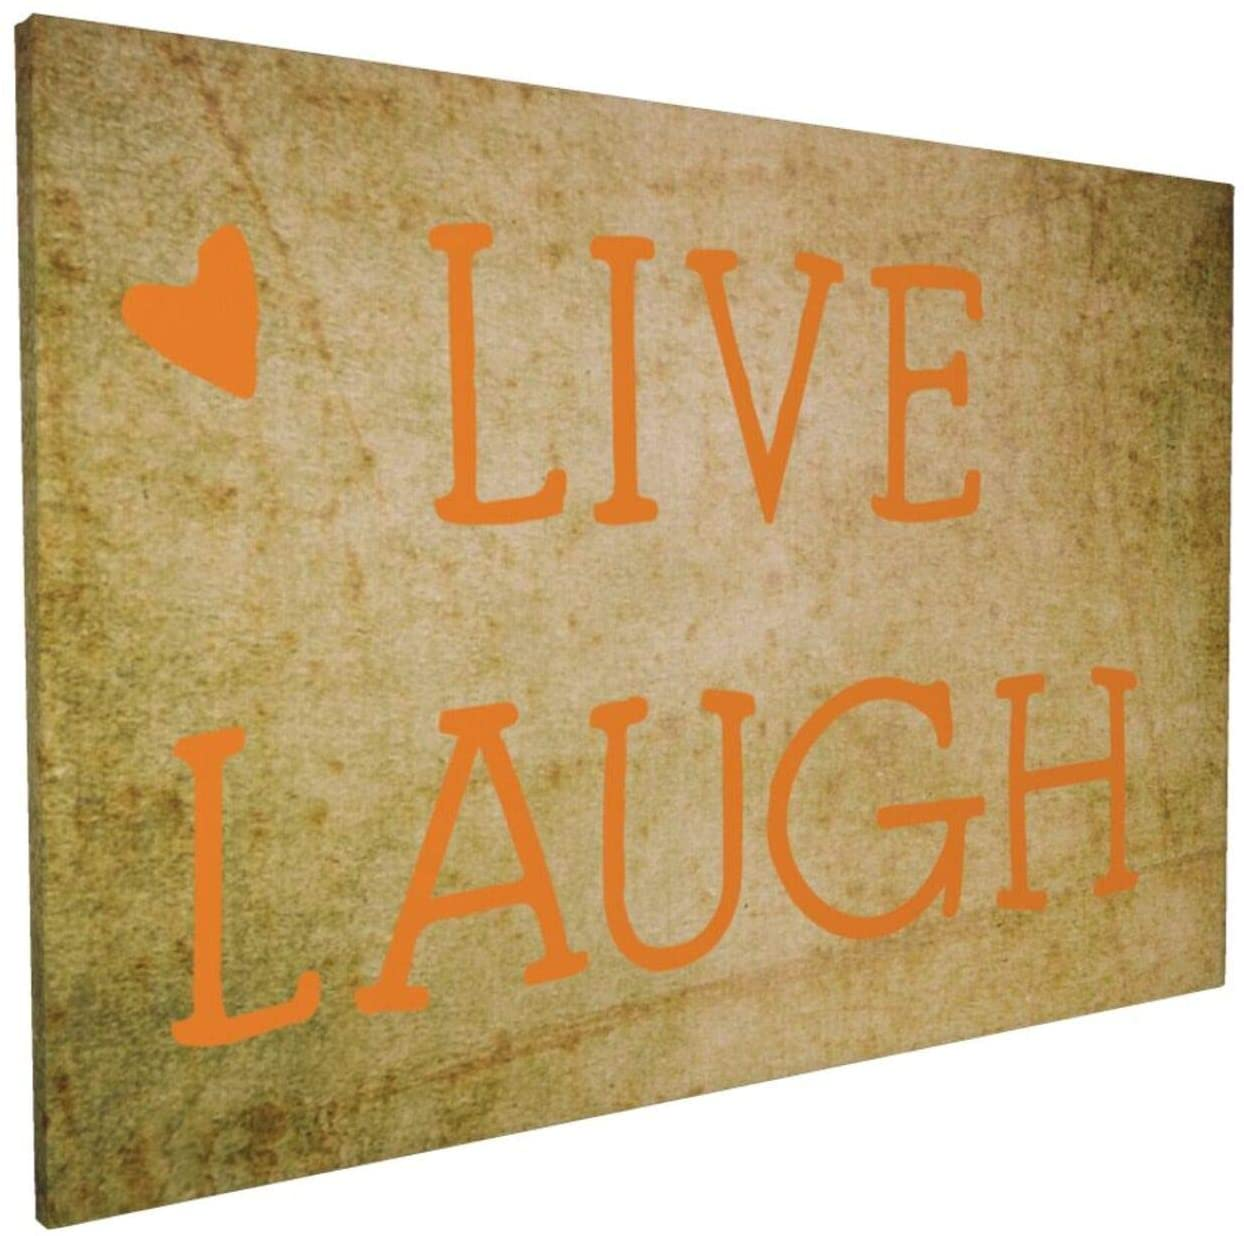 Canvas Wall Art with Live Laugh Love Painting Print, 16 x 24 Pictures Paintings Artwork Framed for Living Room Home Decoration